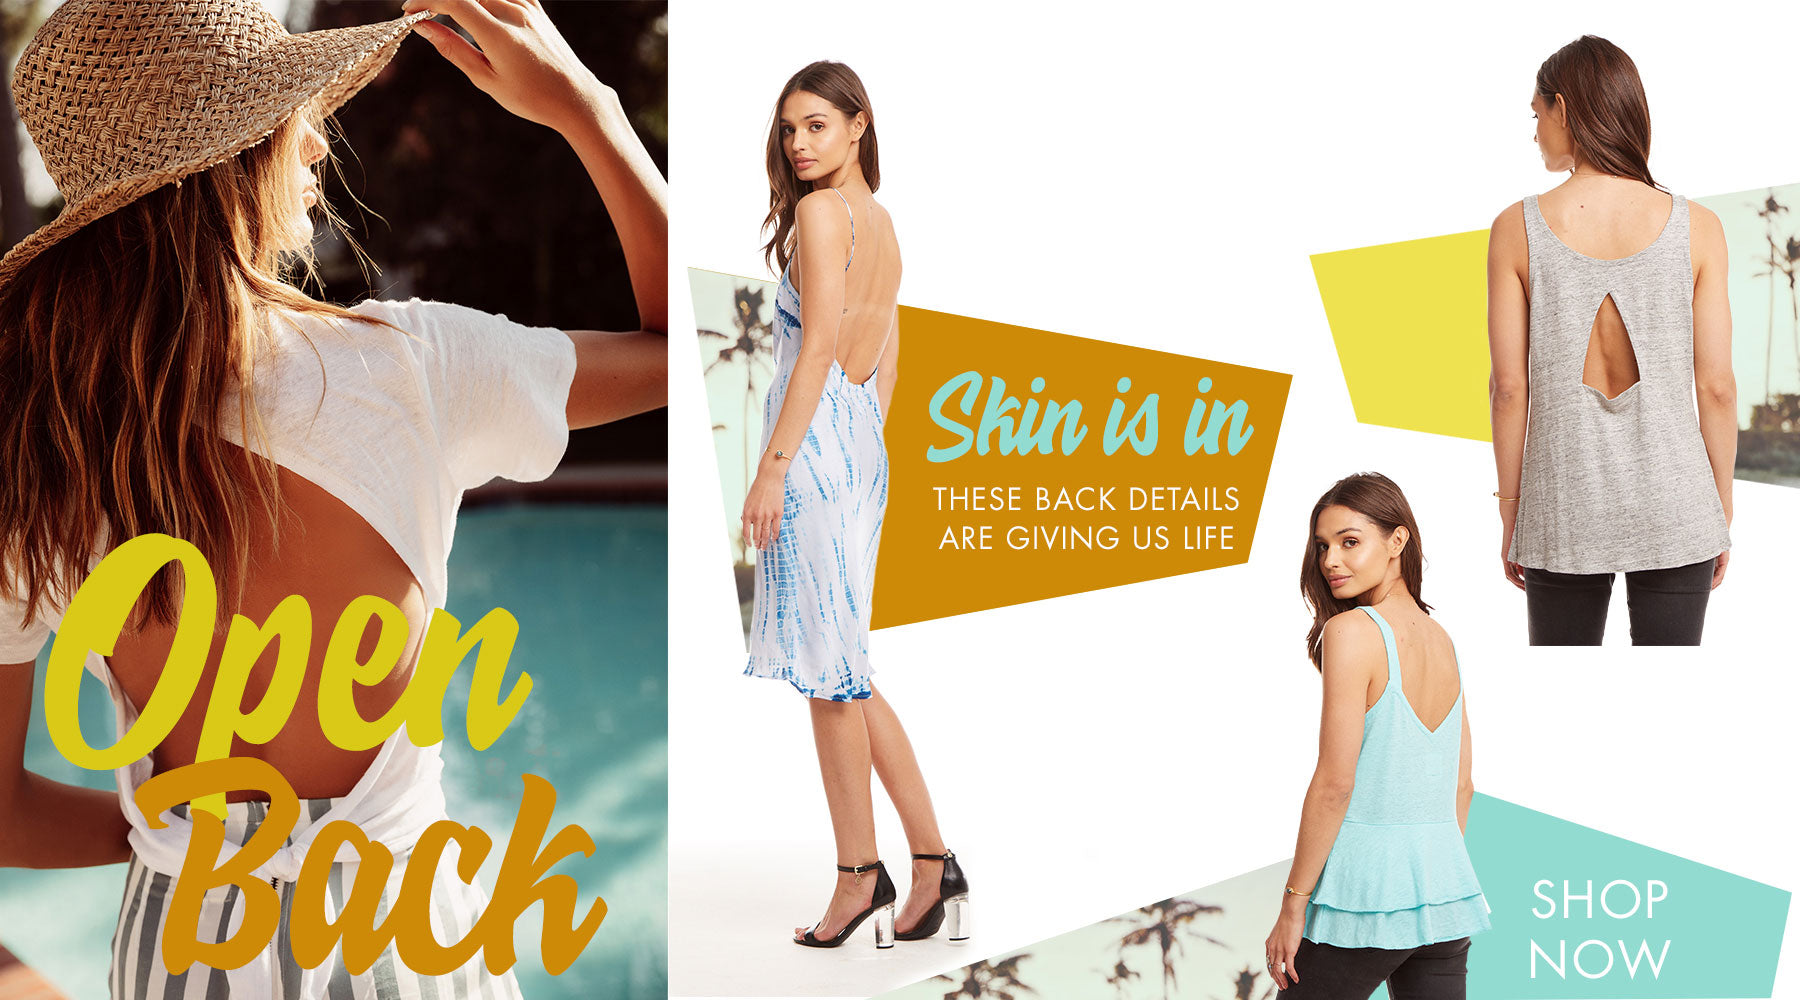 Chaser's Summer 2019 Open Back Details are giving us Life